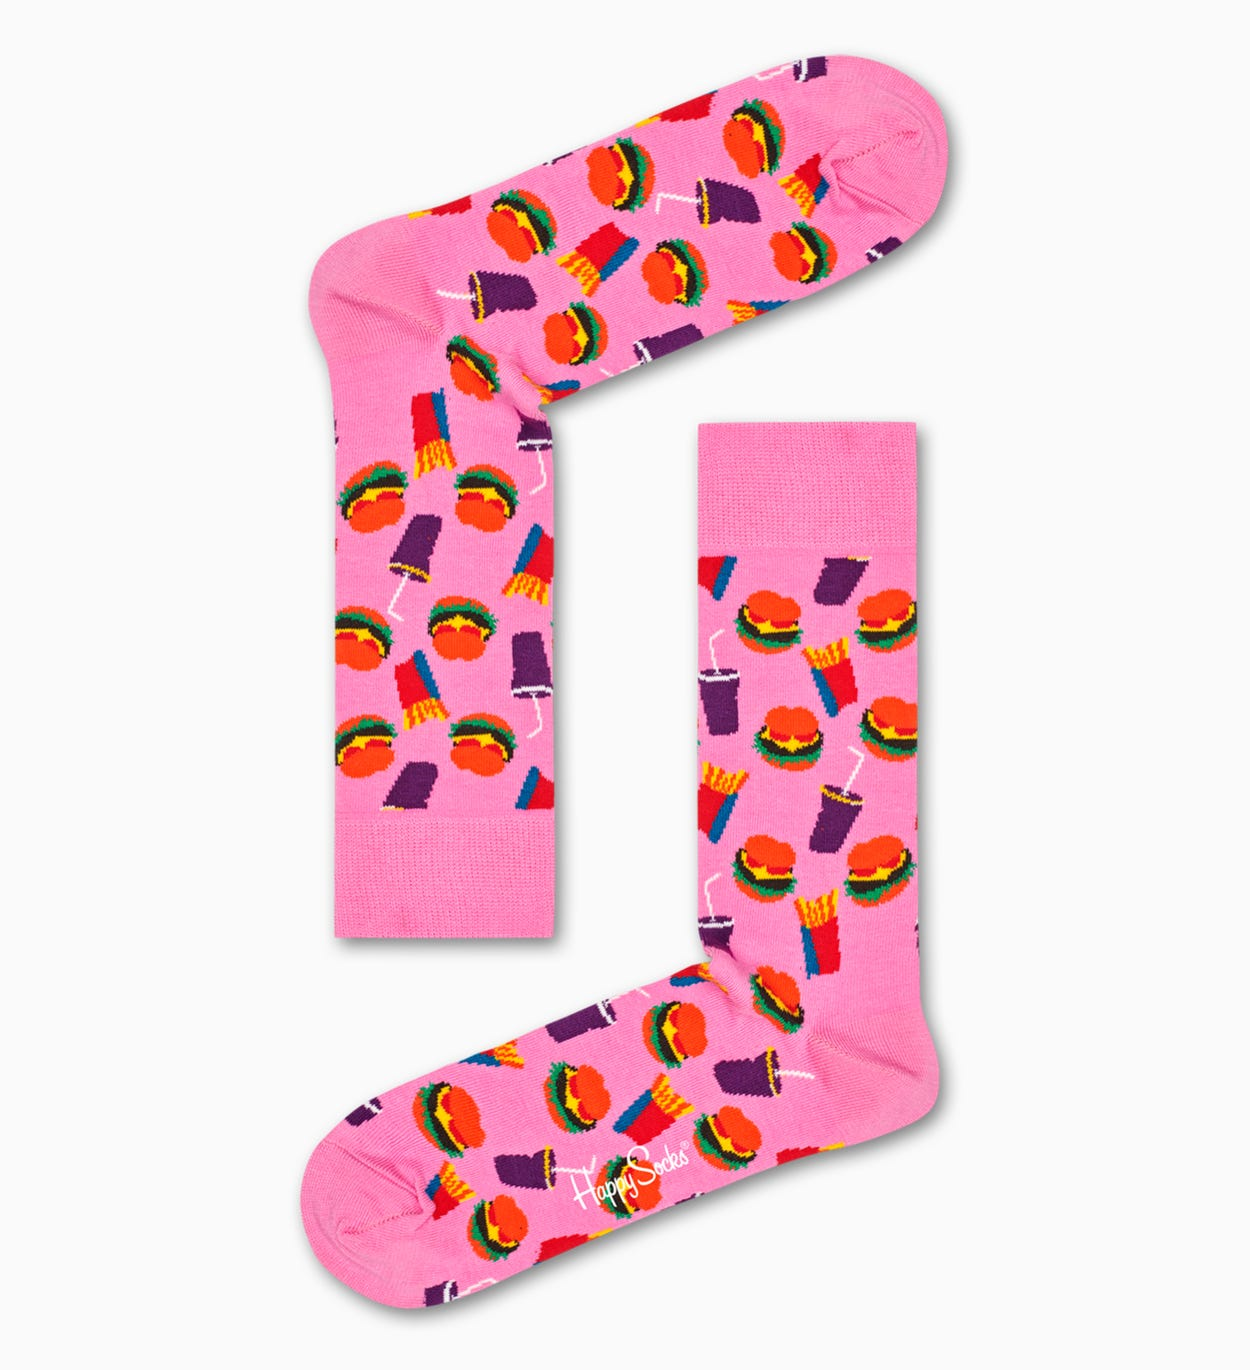 Chaussettes Roses à motif: Hamburger | Happy Socks